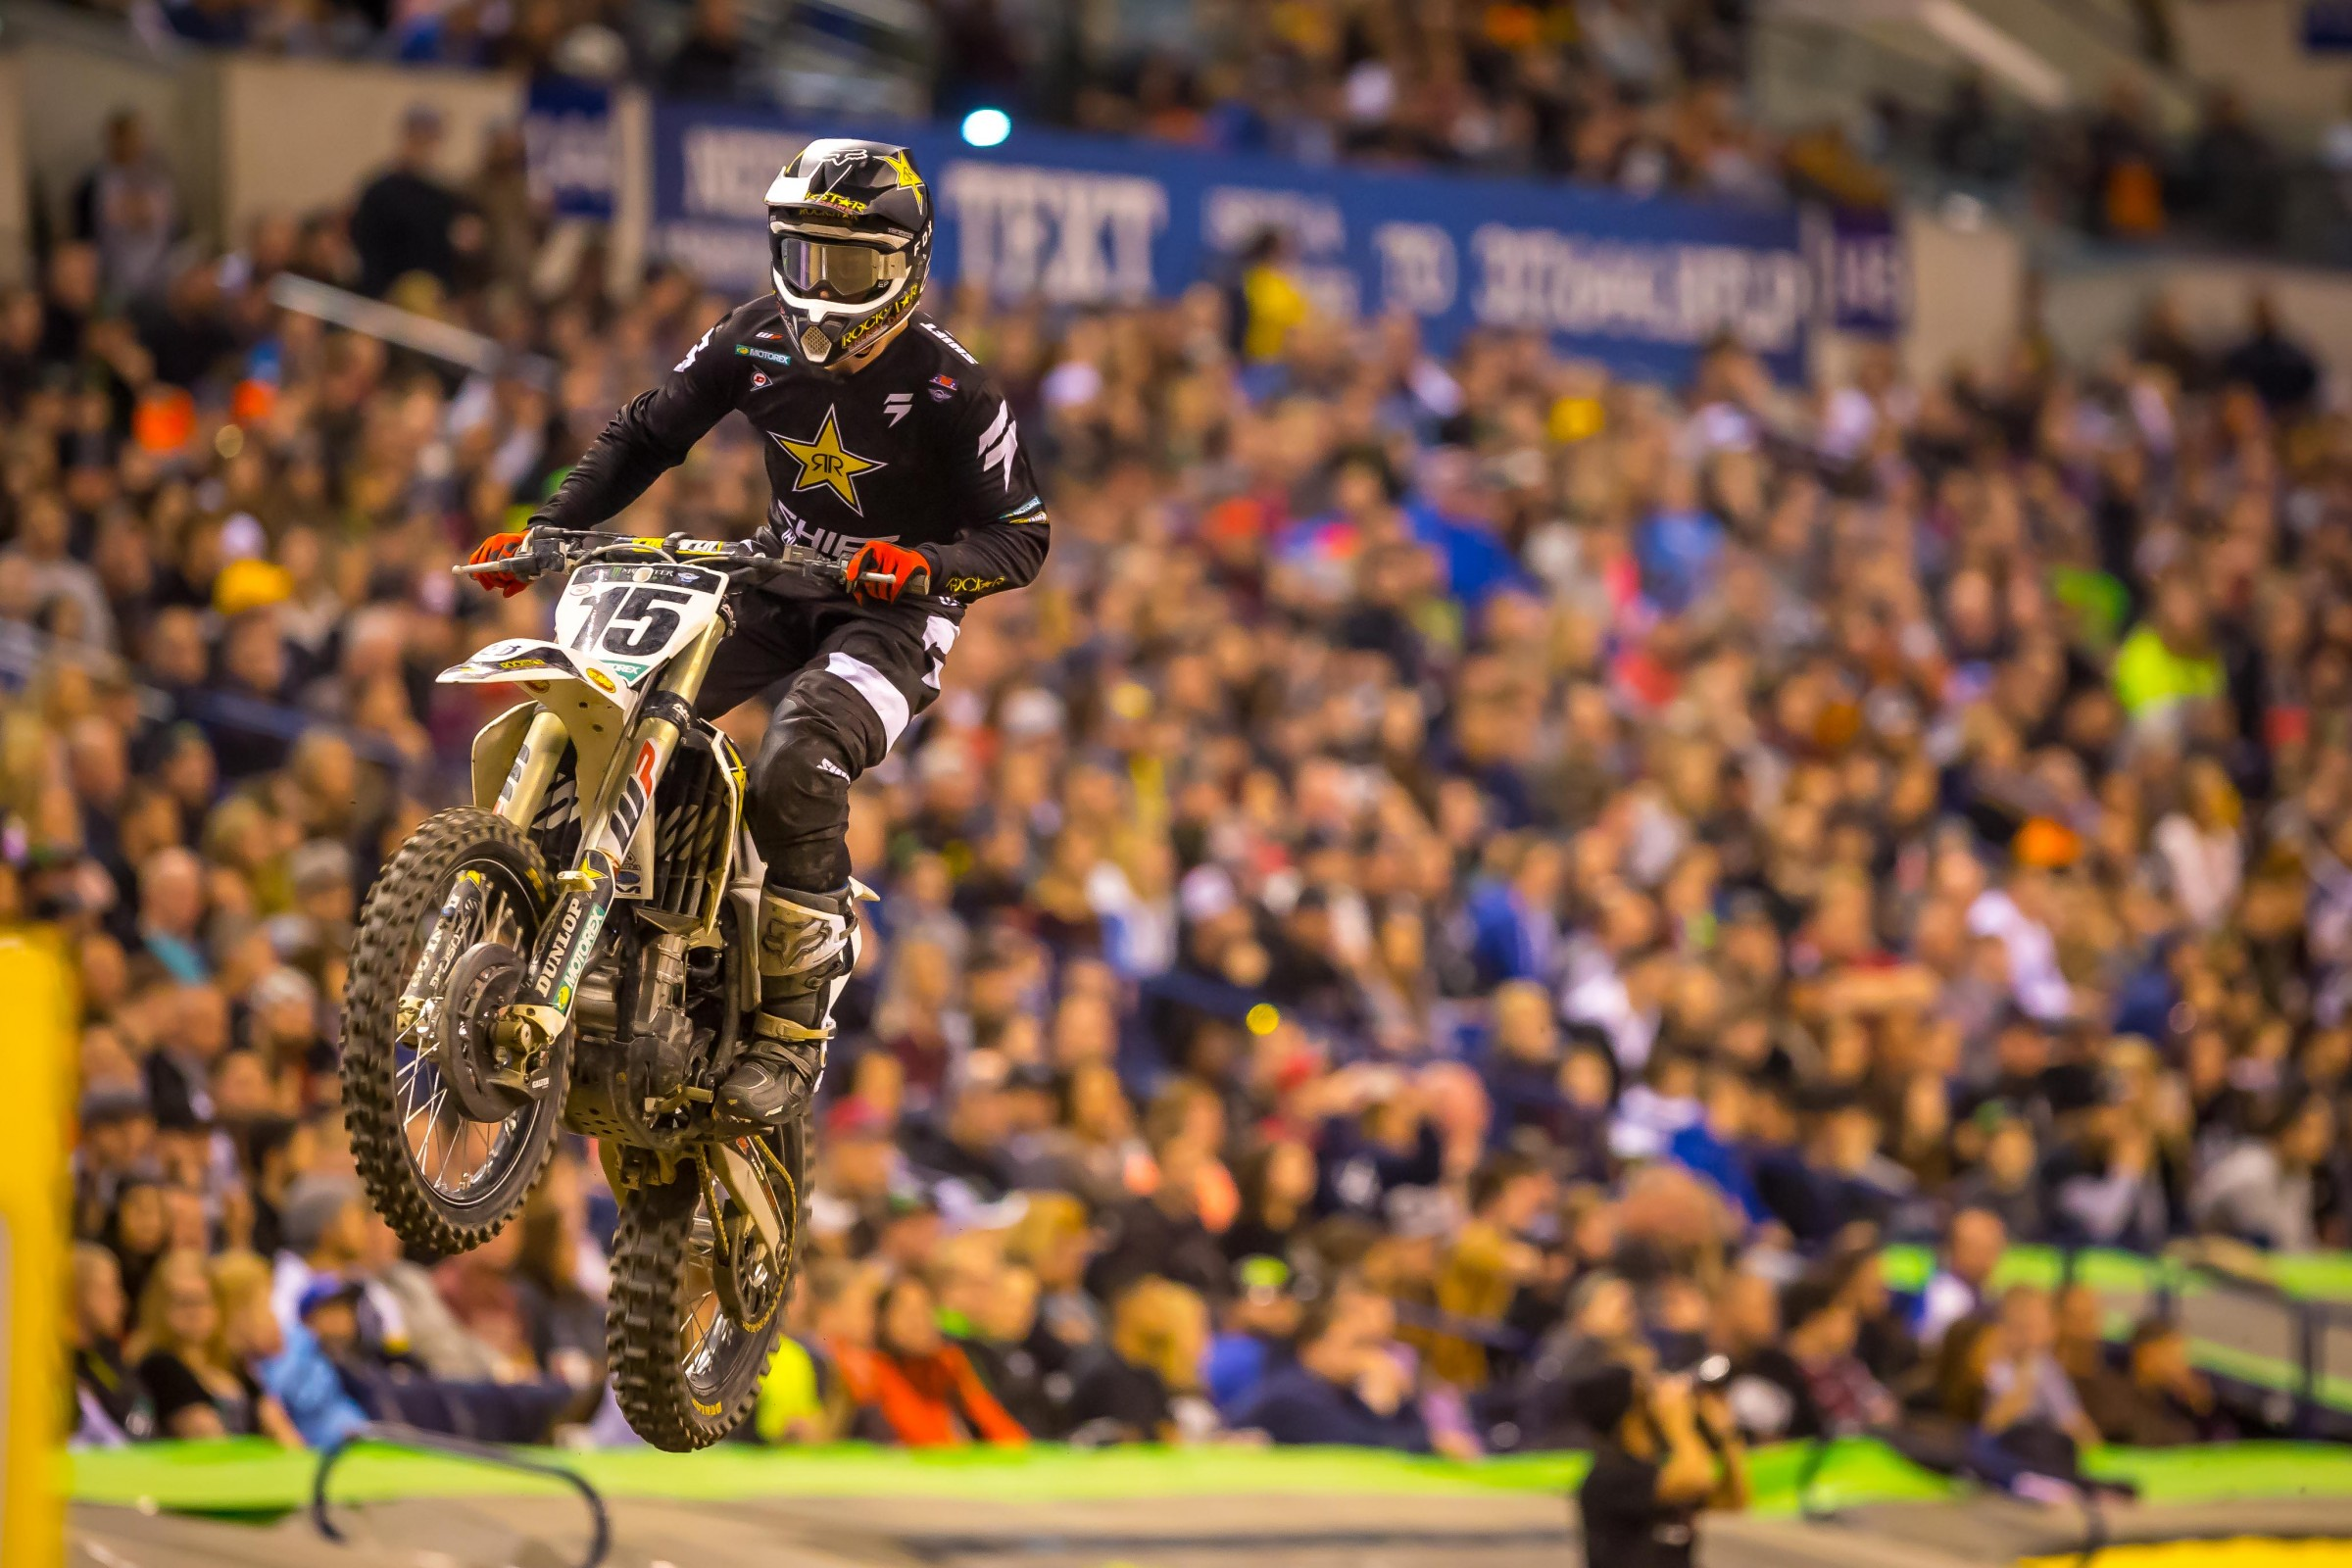 Wilson made the 450SX podium for the first time at Indianapolis.